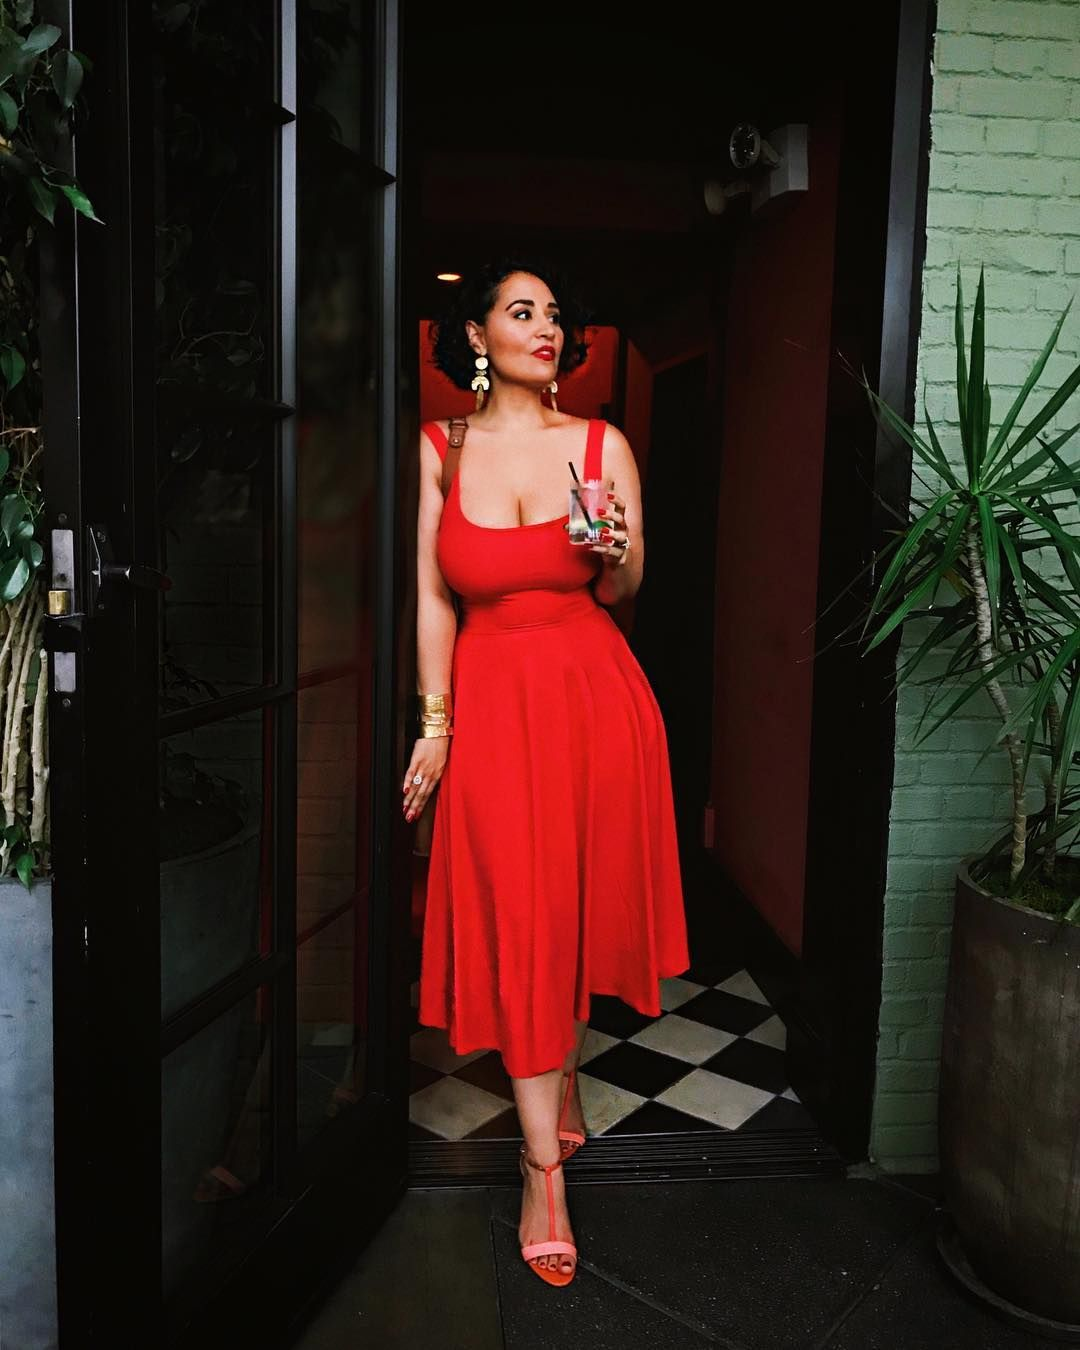 Alejandra Ramos Wears A Red Scoop Neck Tank Dress From Reformation This Is The Rou Dress In Red And Is Summer Dresses Modest Summer Dresses Lace Dress Outfit [ 1350 x 1080 Pixel ]